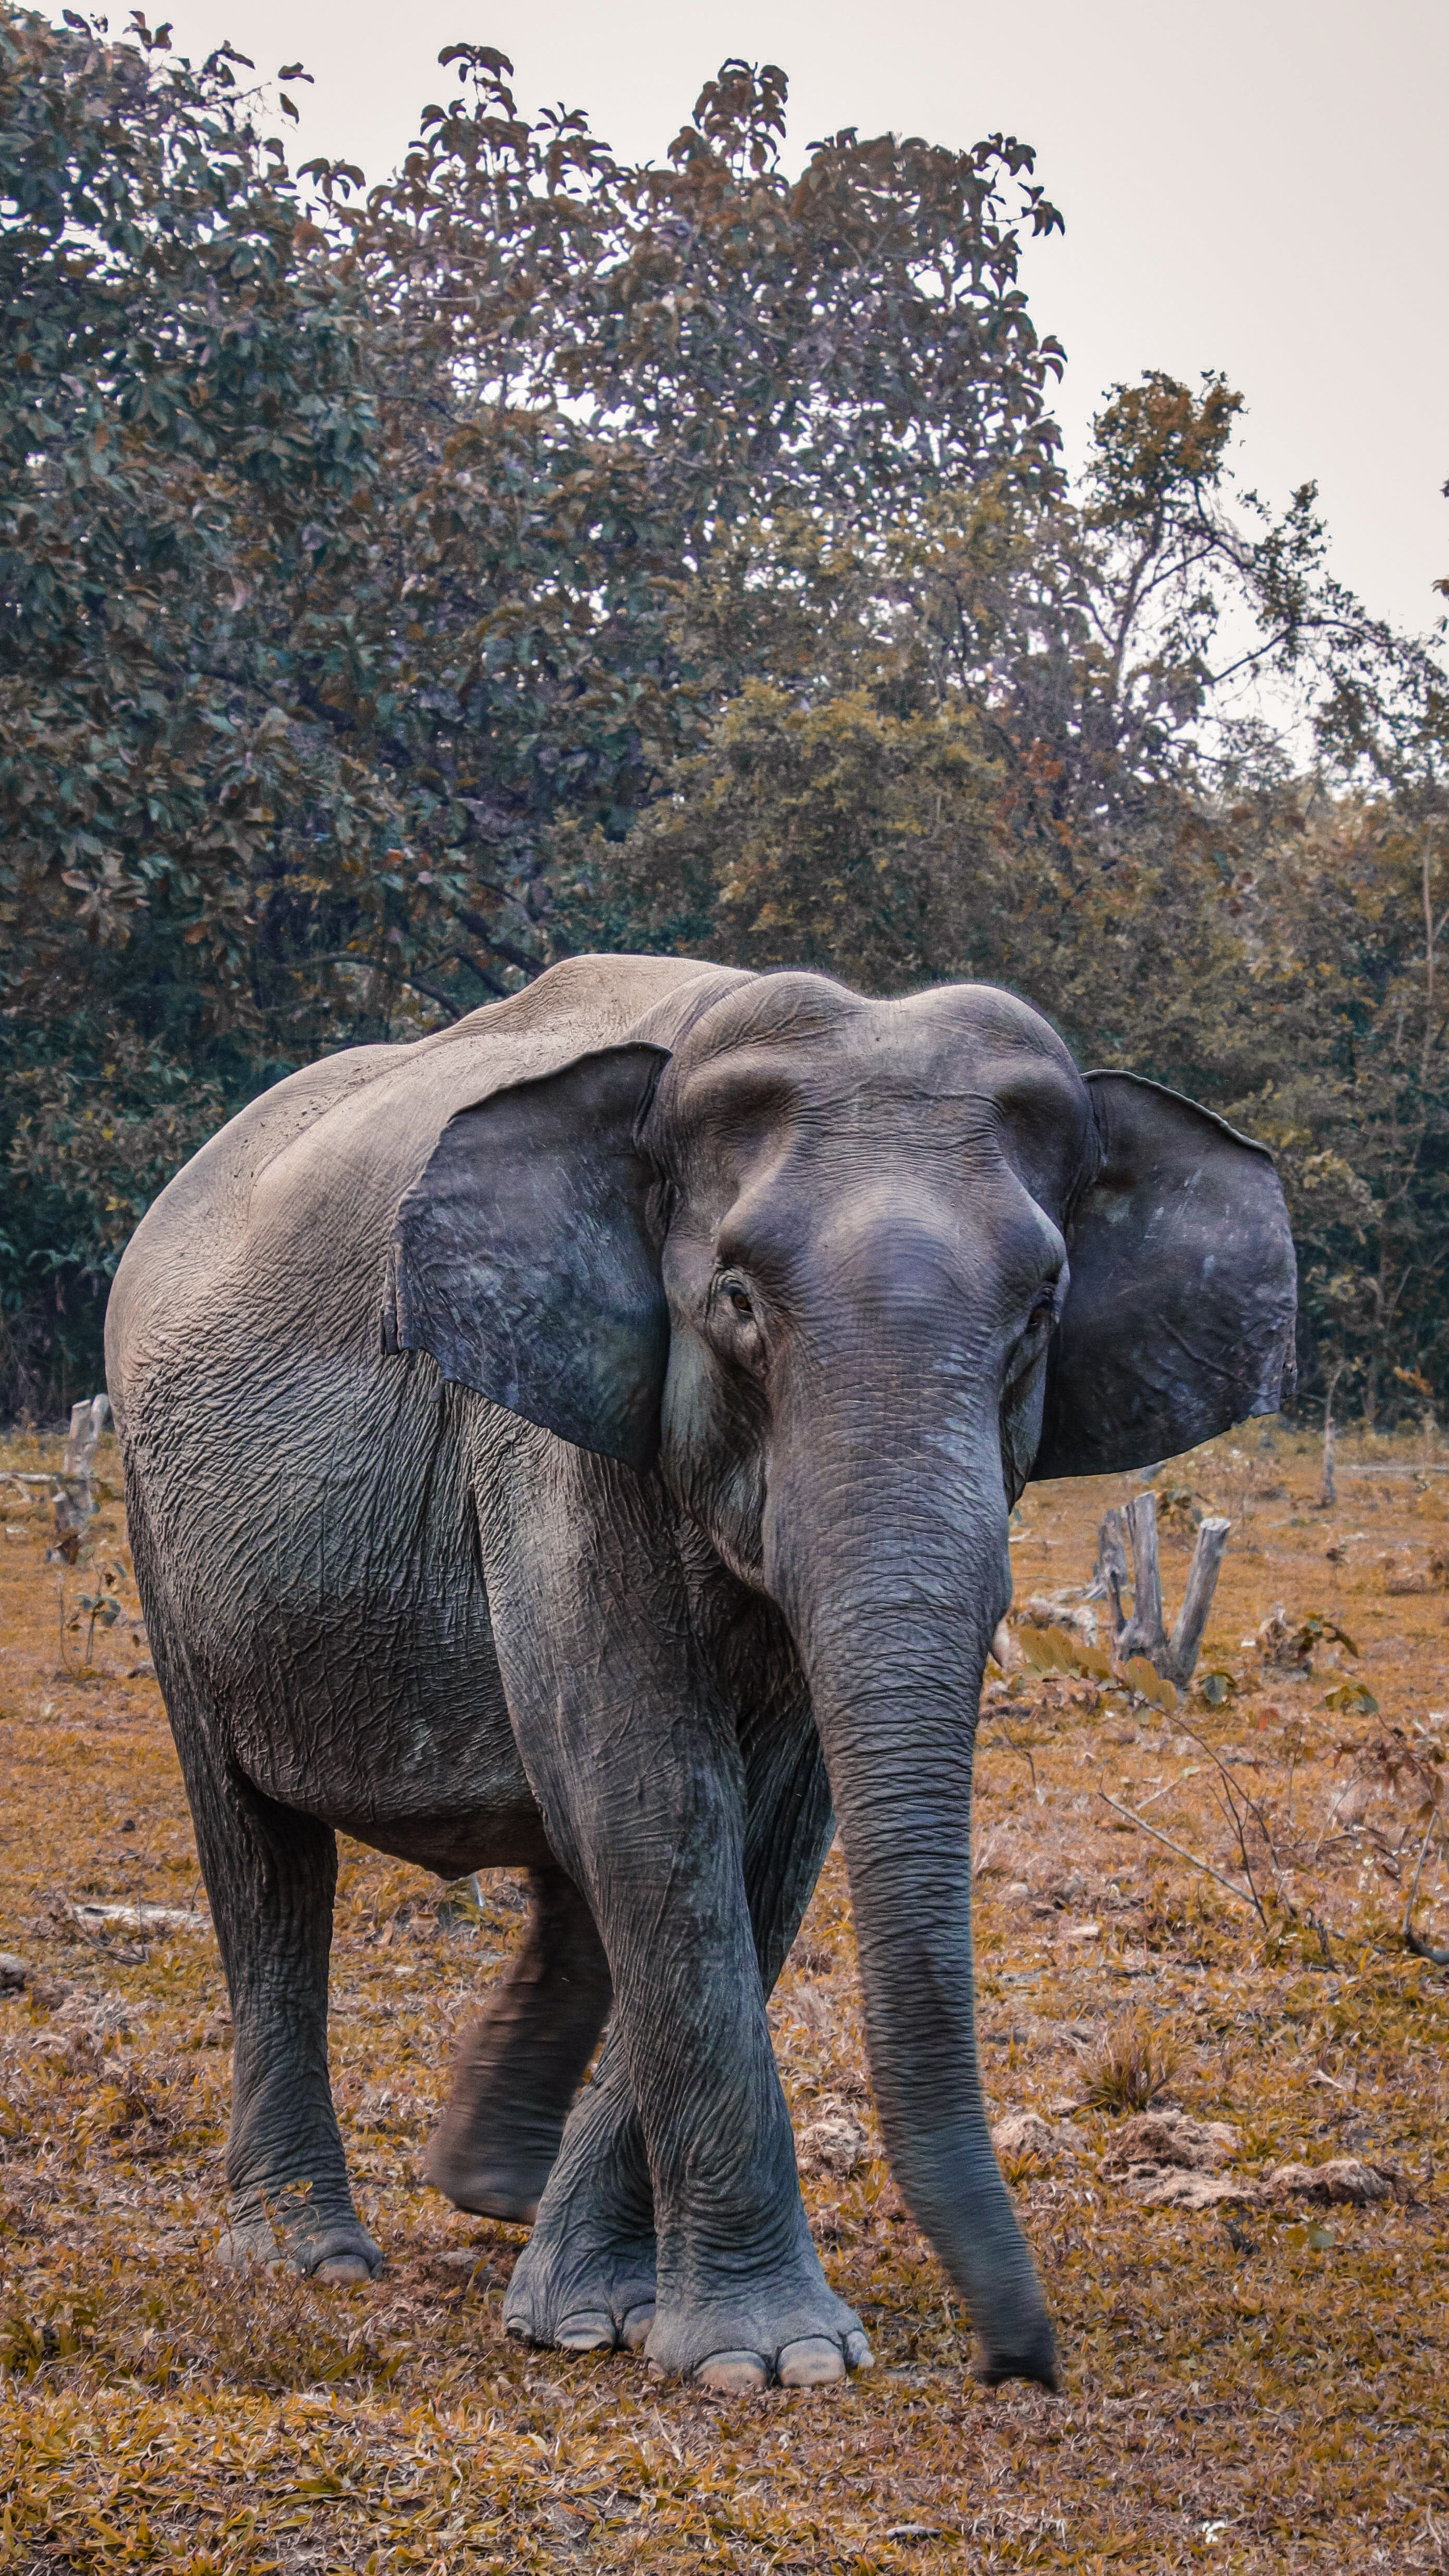 Elephant In The Savannah Premium Lightroom Presets For Wildlife Photography In 2020 Nature Photography Animals Elephants Photos Wildlife Photography